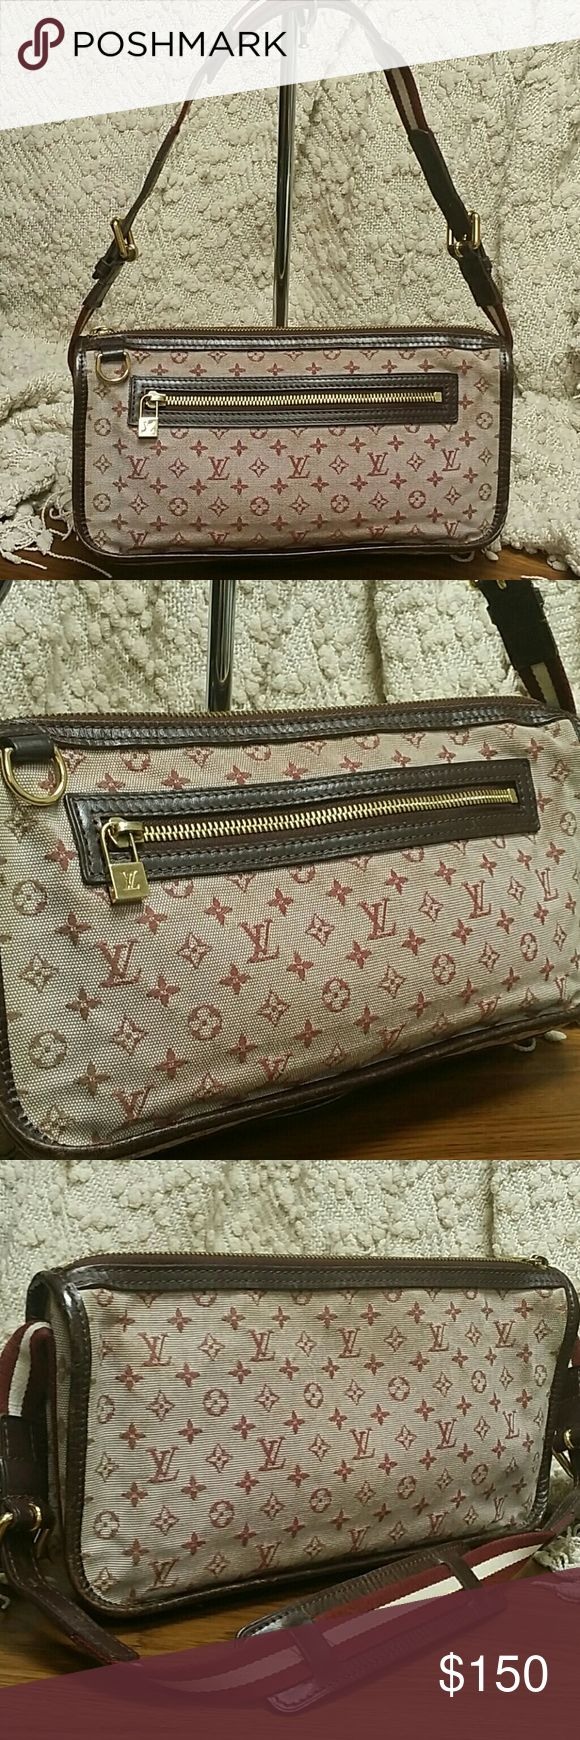 Authentic Louis Vuitton Monogram bag Pochet Catherine.  Good condition. Minor wear to corners.  Strap is great, very clean, and slightly adjustable.  The monogrammed canvas does not have any rips, tears. The inside is pretty clean. Nothing glaring. The canvas is in very good condition and if you cleaned it, it would be spectacular.  Just minor soiling due to use. Haven't used this bag in a long time.  Cannot locate the dustbag.  The color is called 'cherry'. Louis Vuitton Bags Clutches…